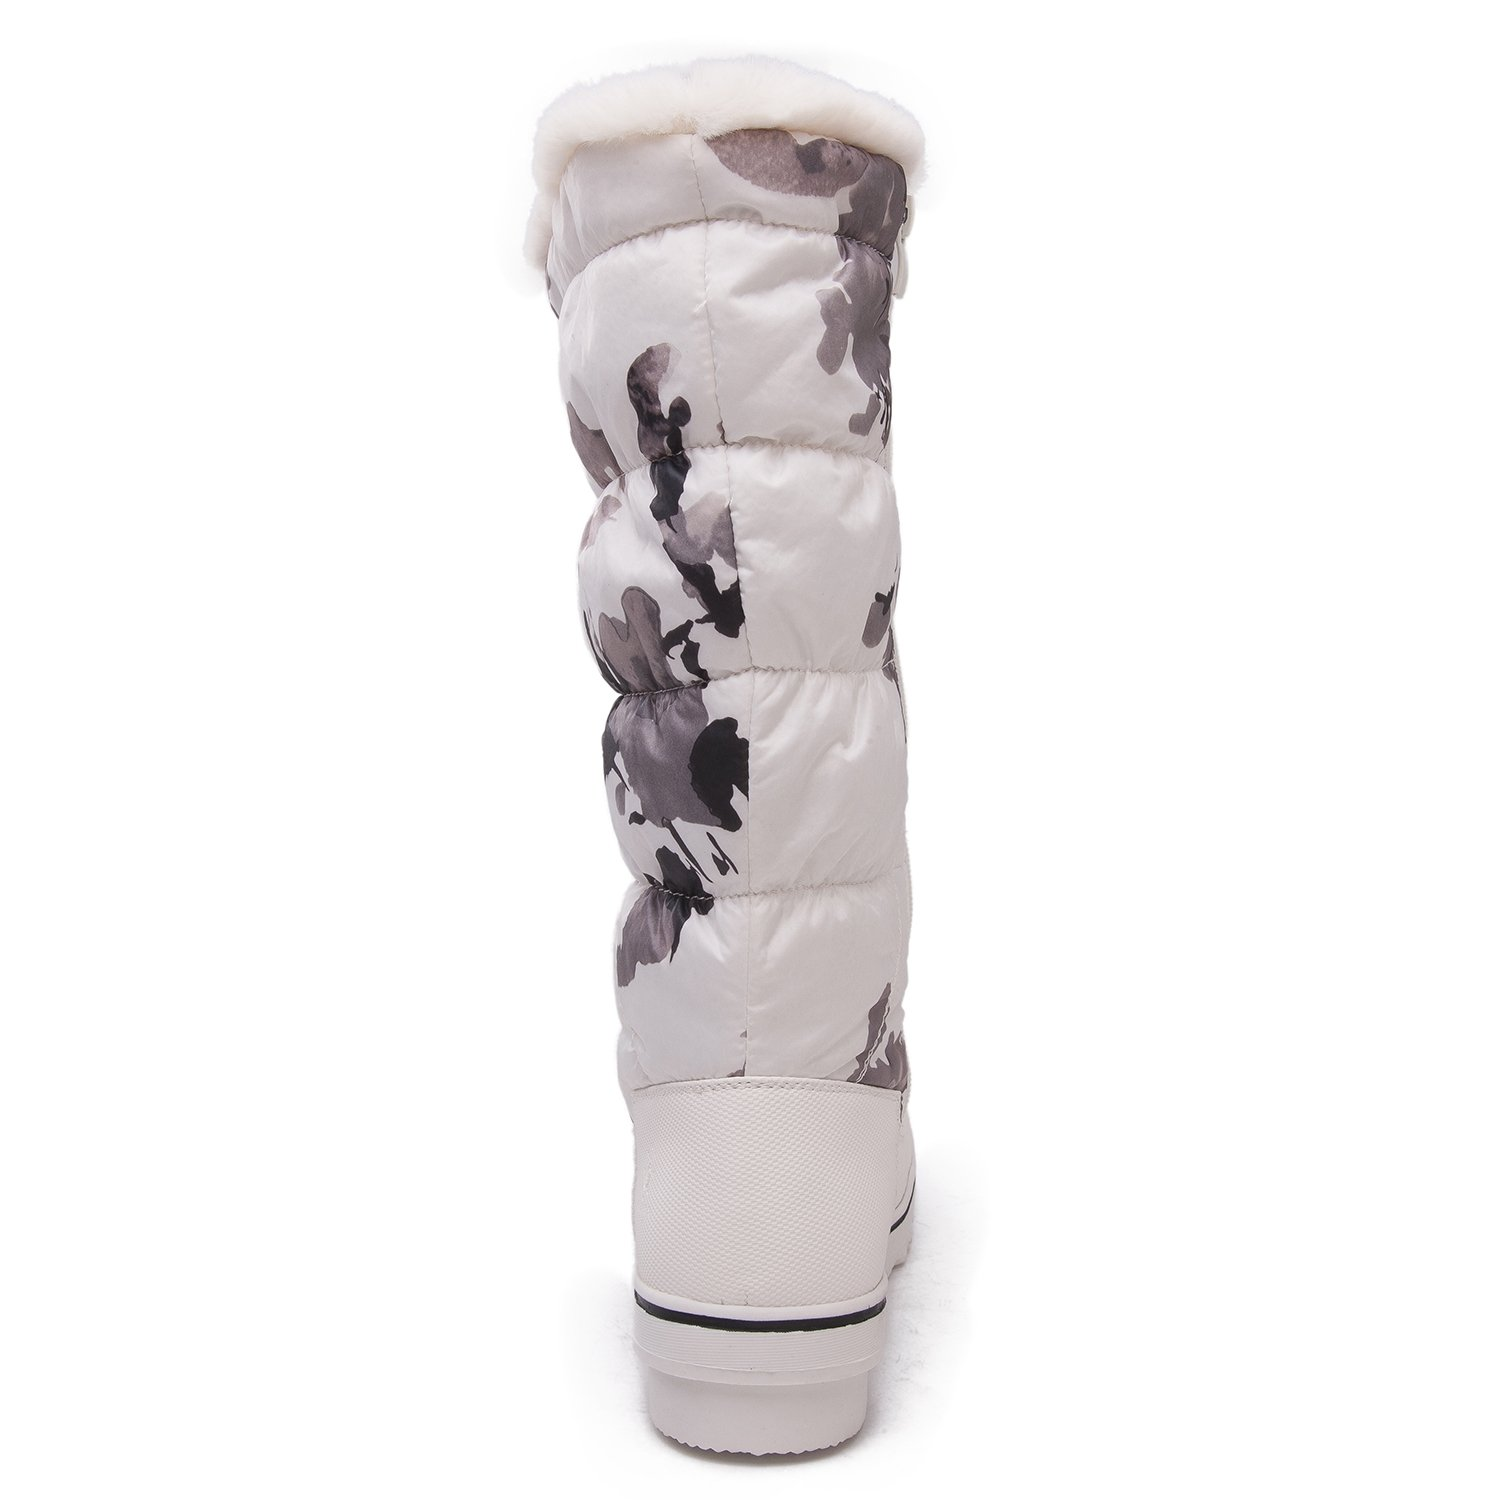 GW Women's 1713 White Camouflage Snow Boots 9 M US by Global Win (Image #3)